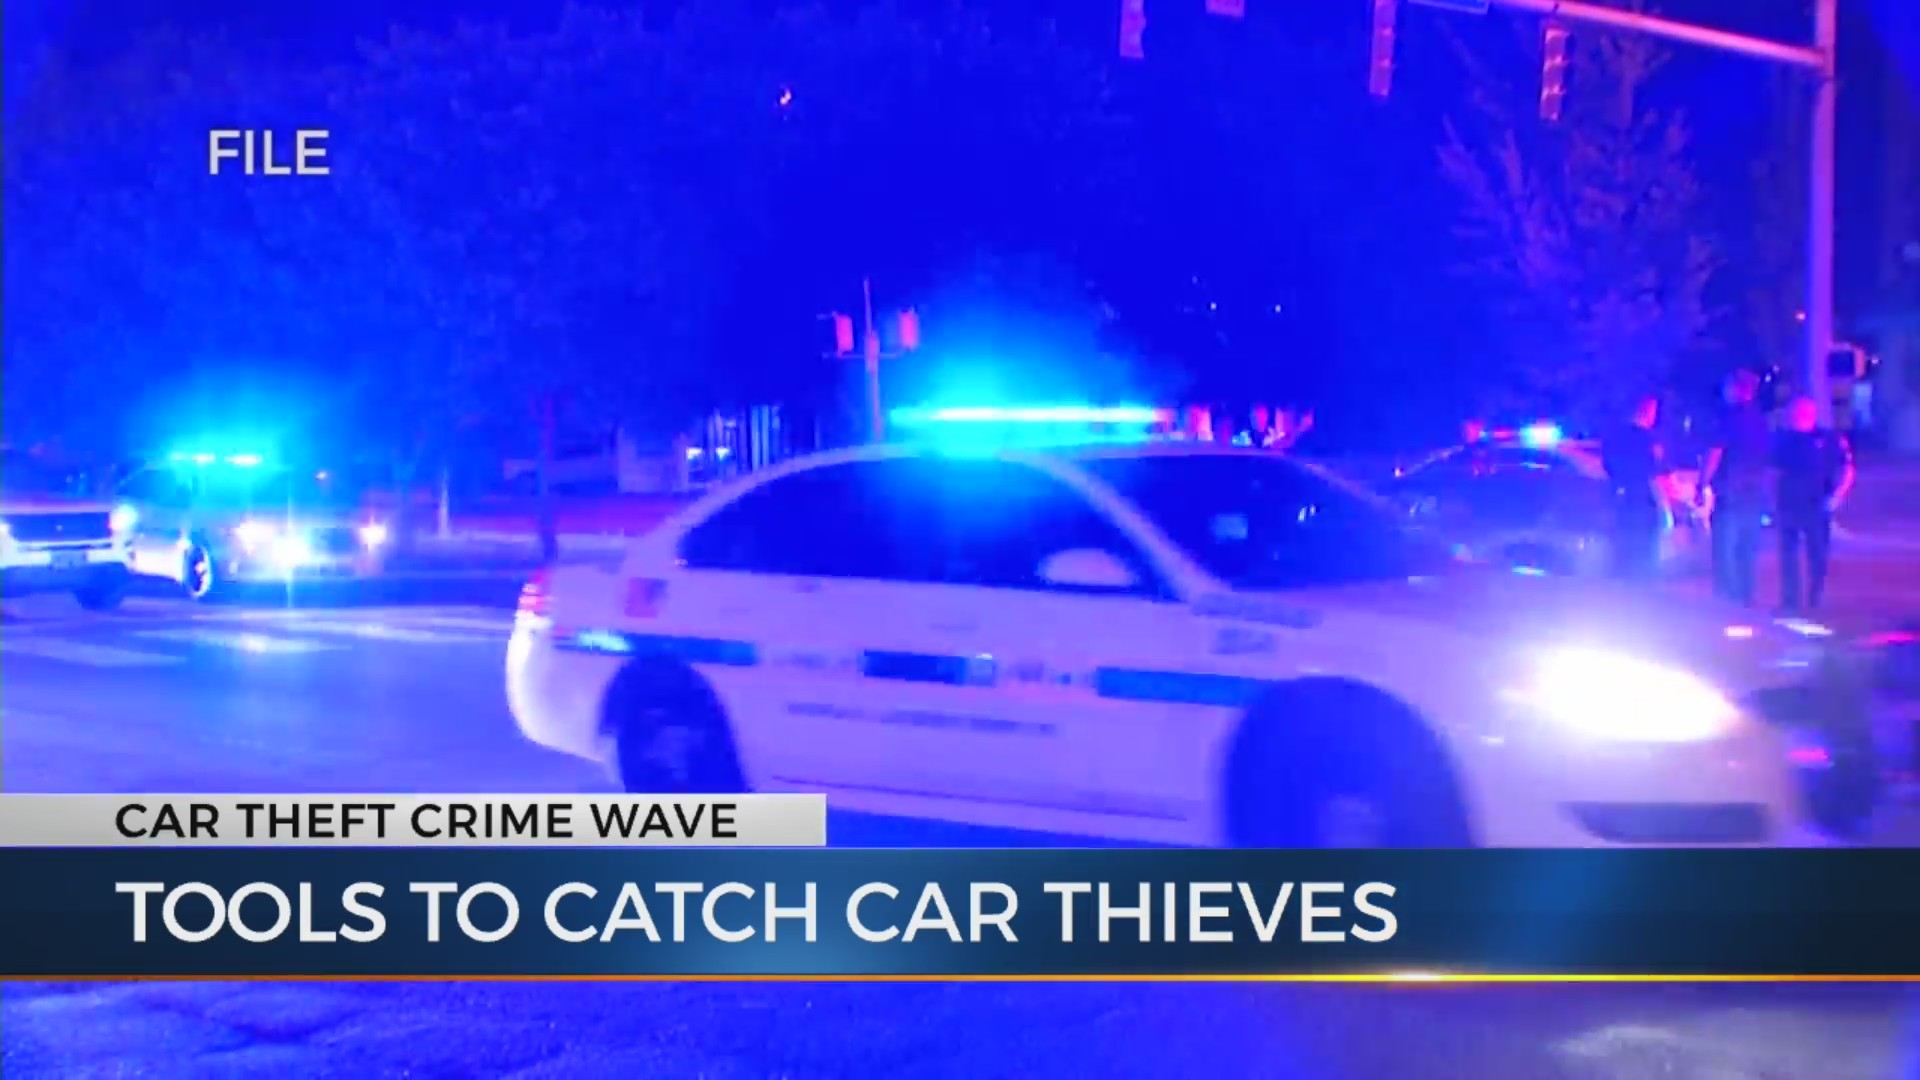 New_technology_helps_police_catch_car_th_0_20190510033448